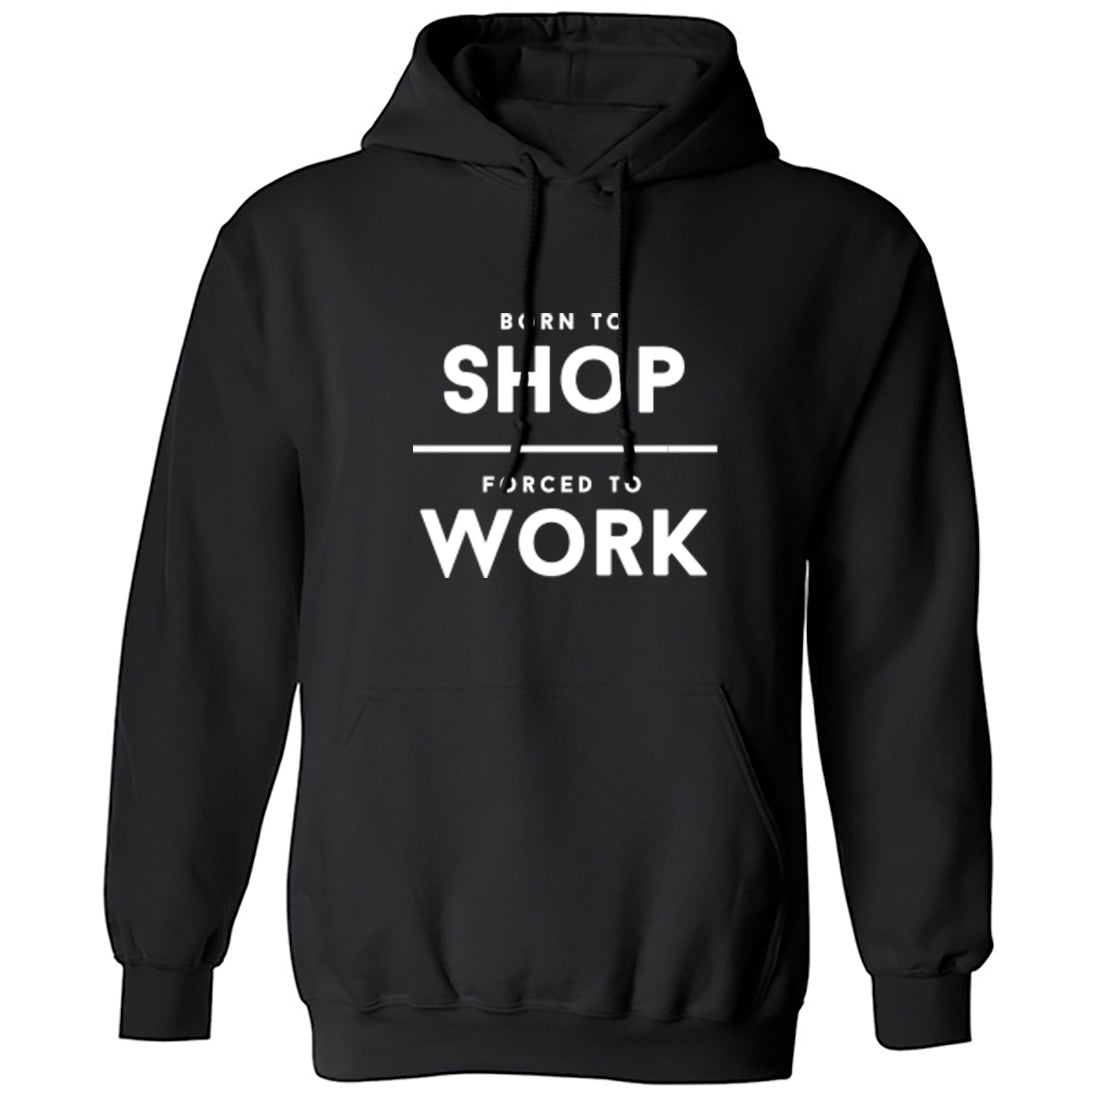 Born To Shop Forced To Work Unisex Hoodie K2006 - Illustrated Identity Ltd.